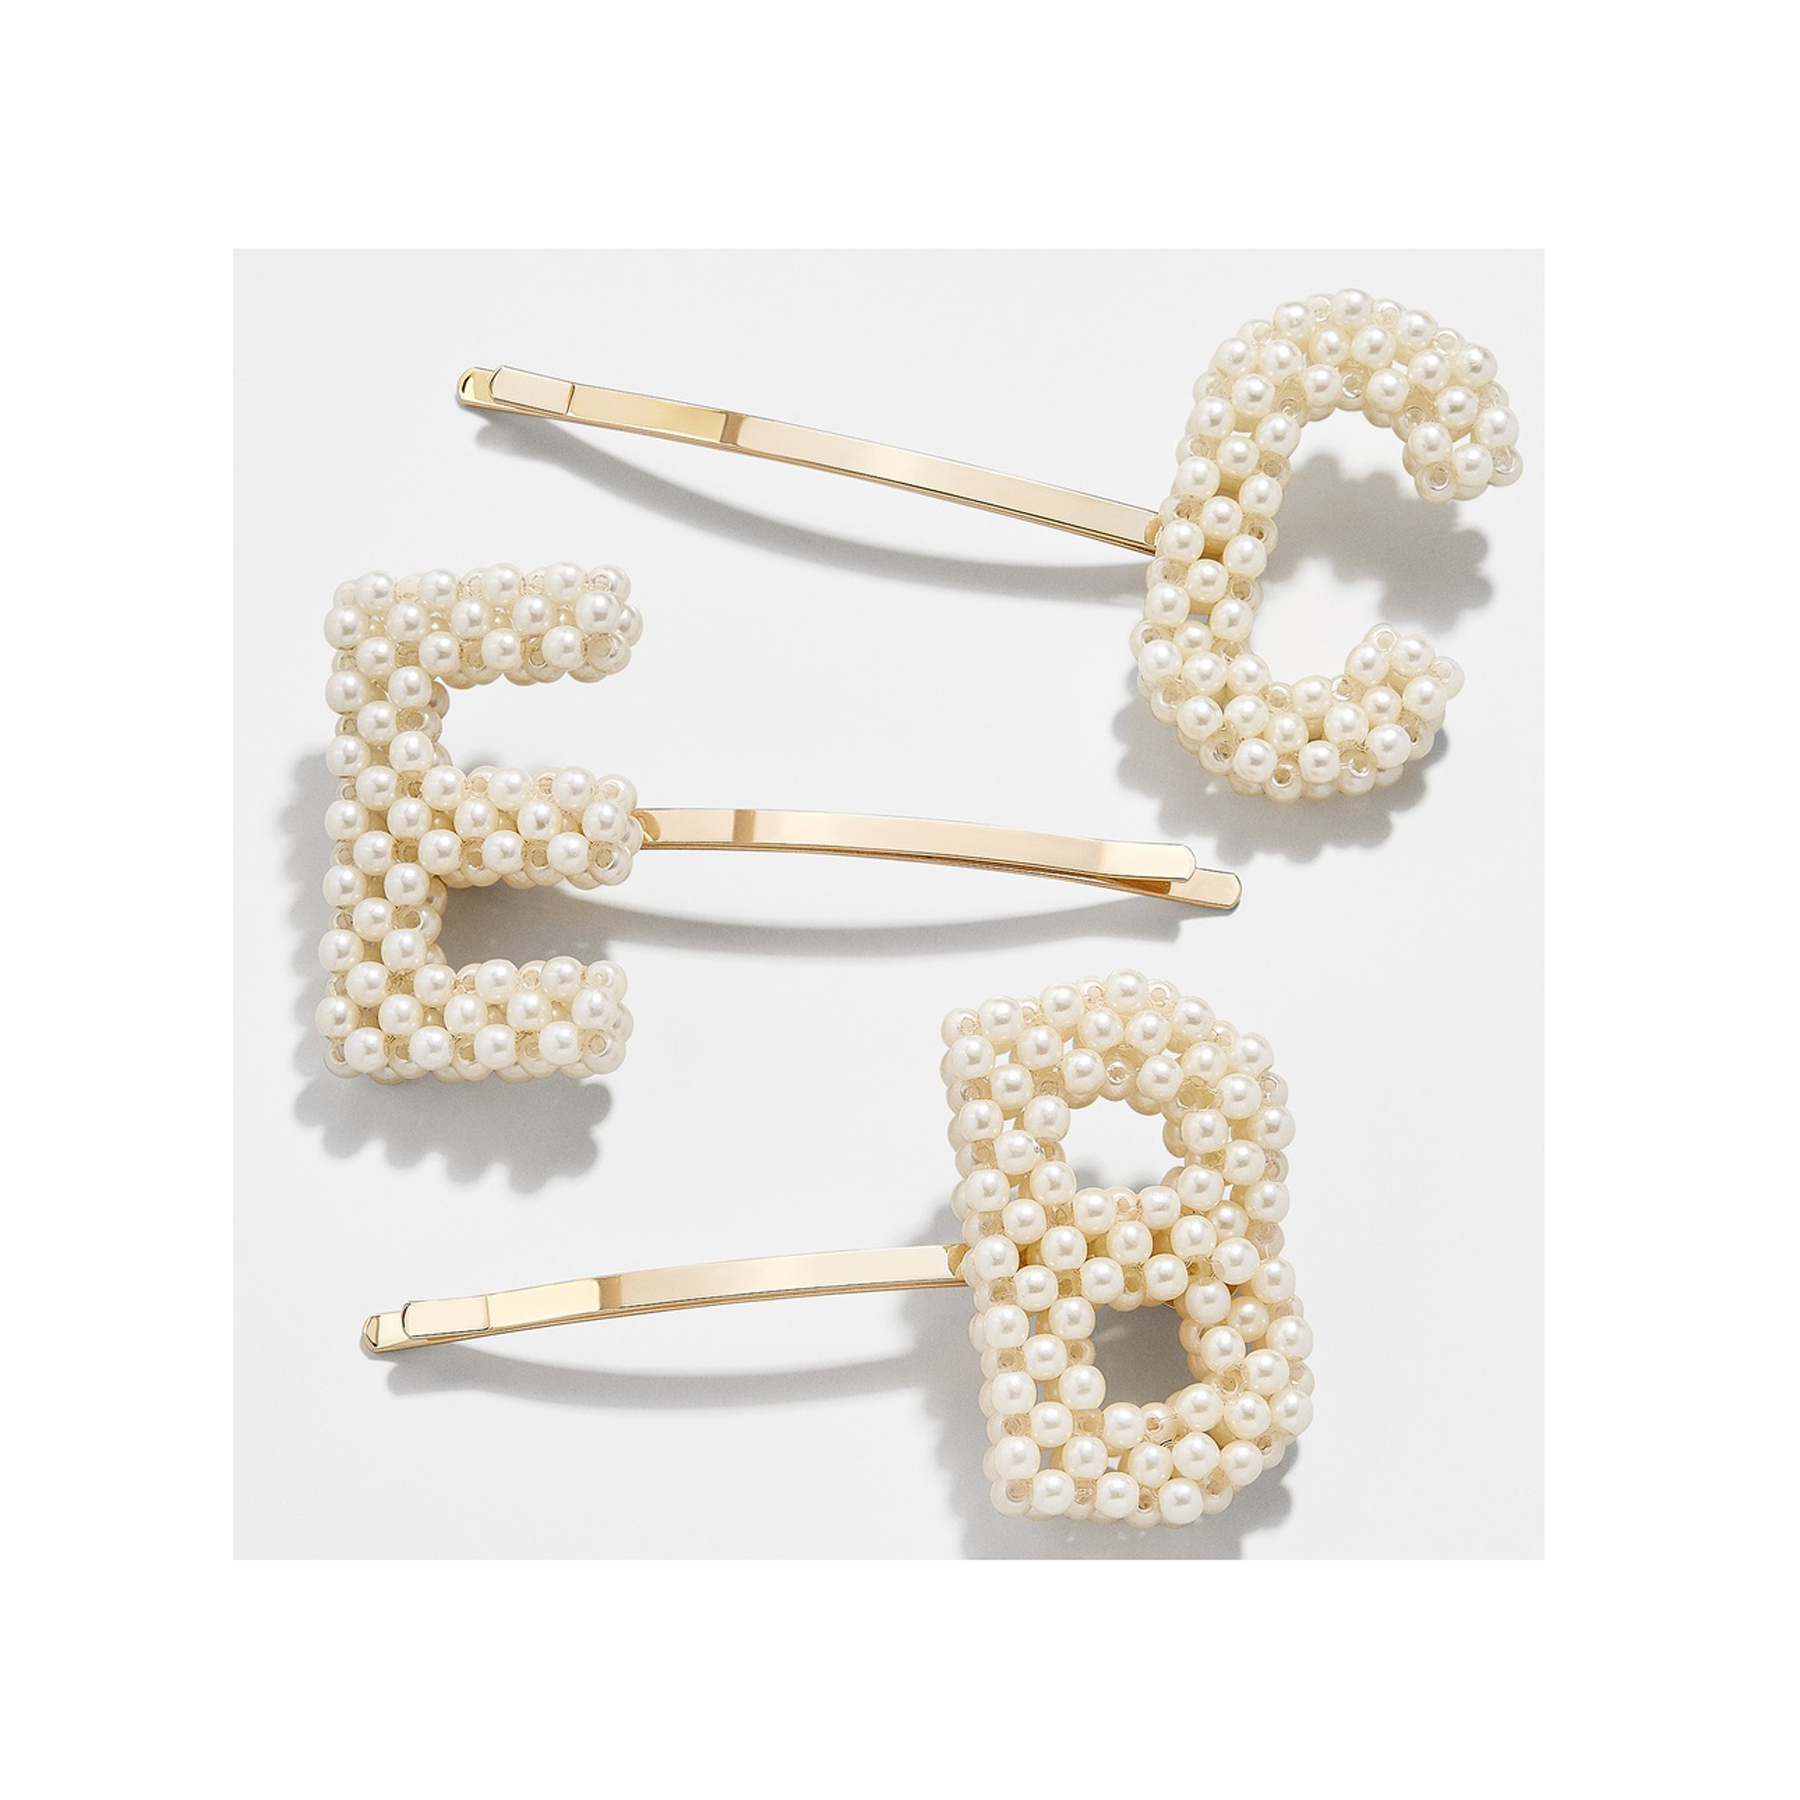 Cheap Christmas Gifts: Bauble Bar pearl rectangle hair pin